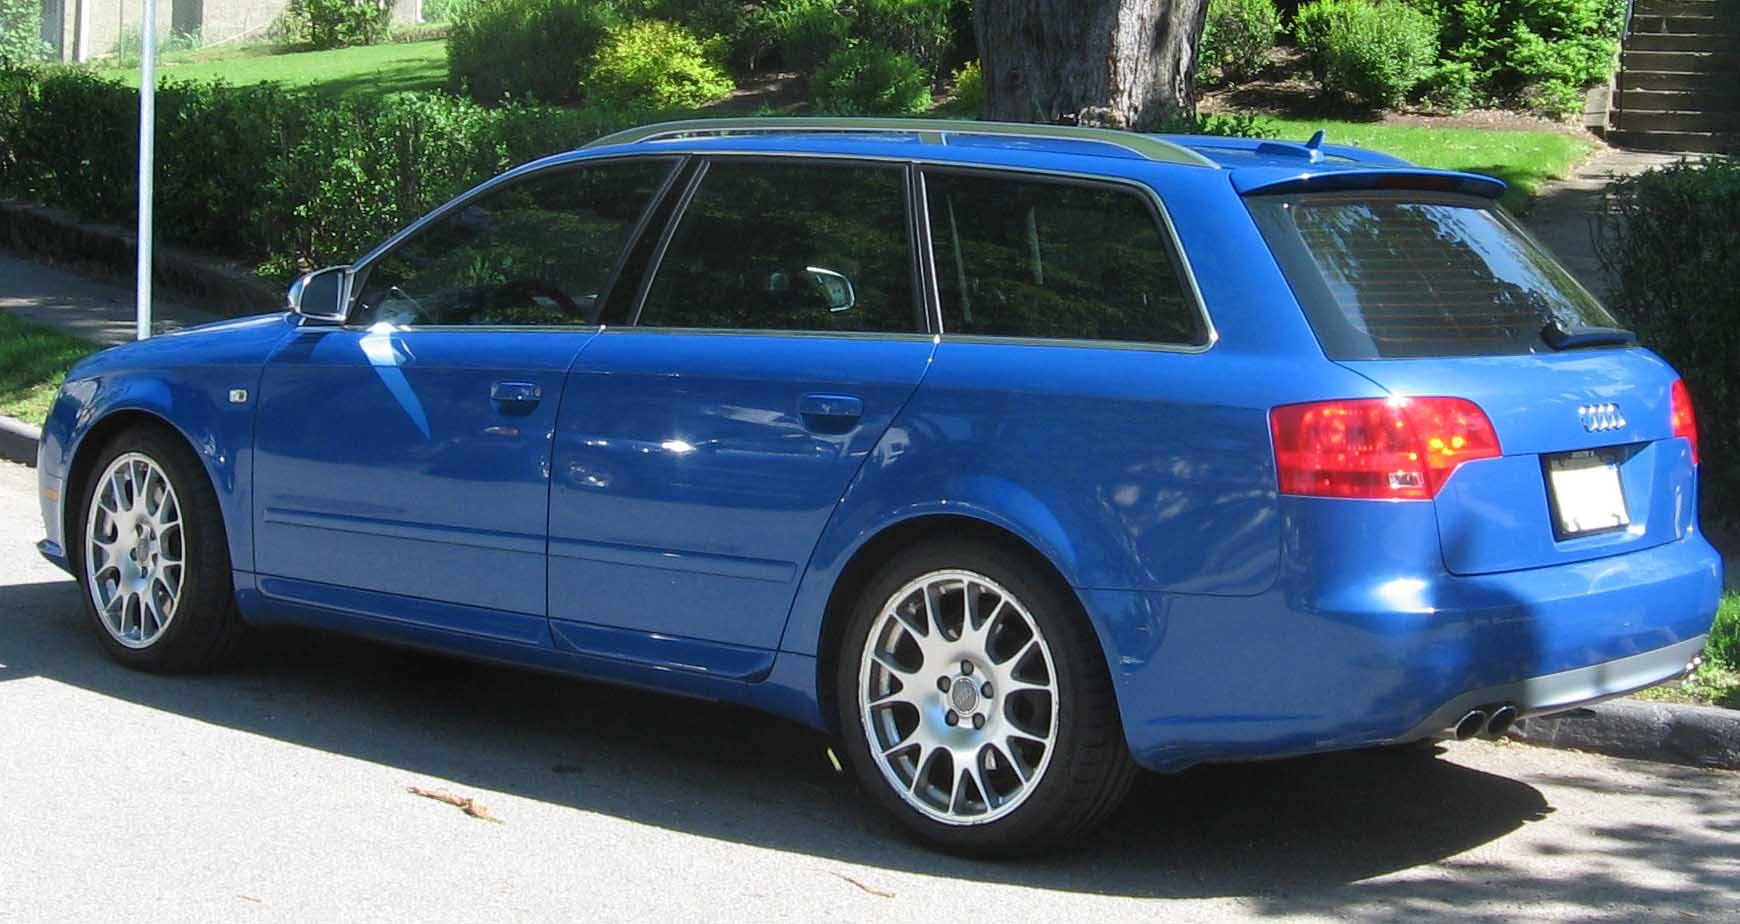 File Audi S4 Avant B7 Rear Jpg Wikimedia Commons